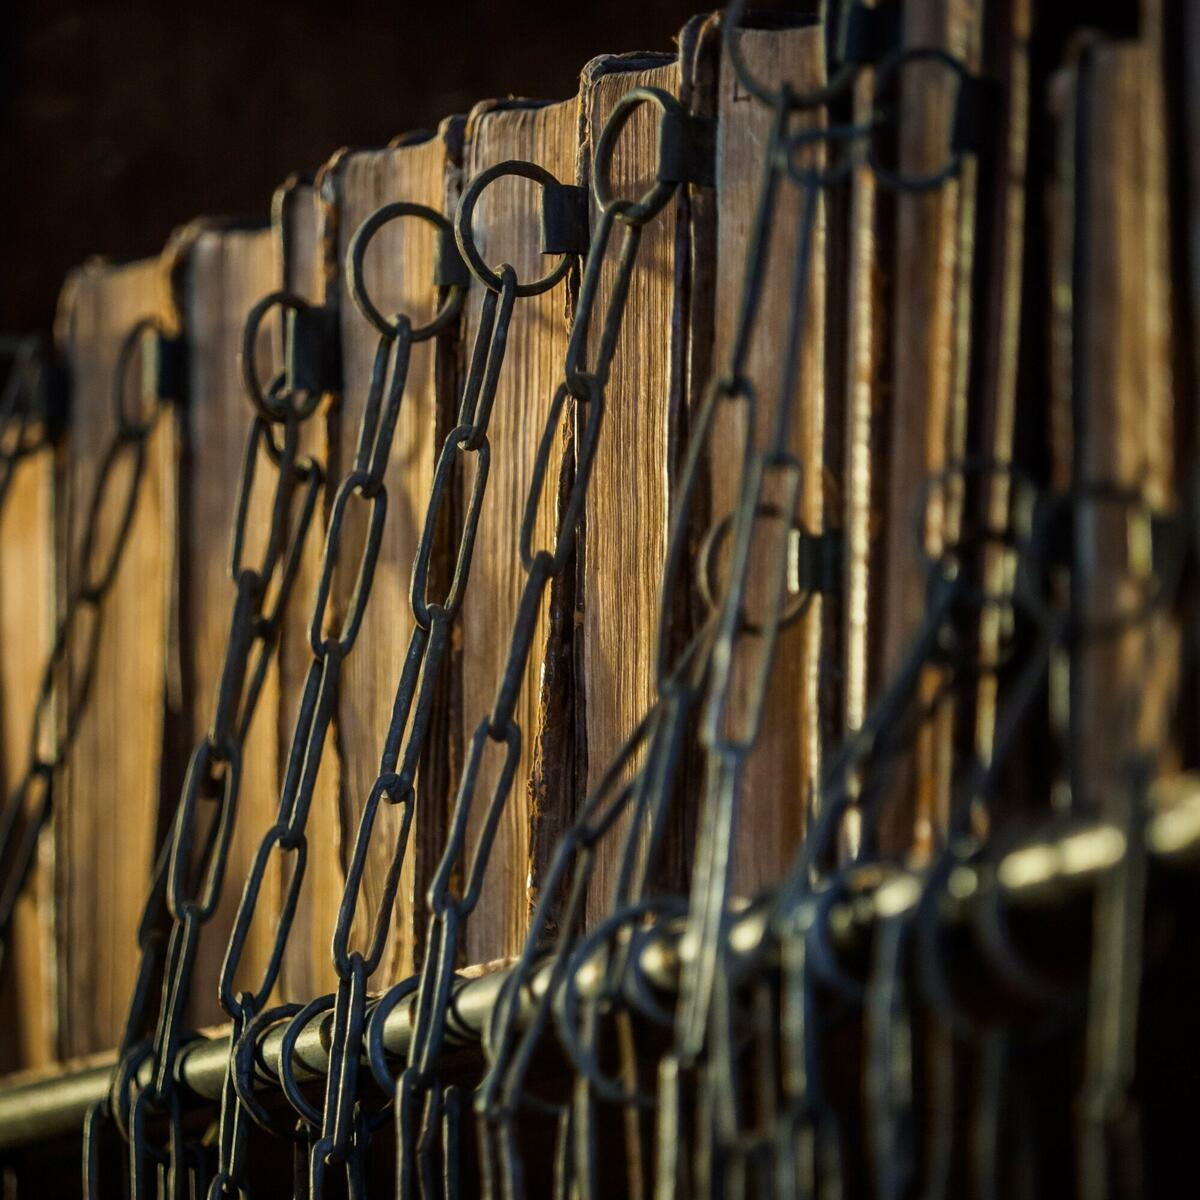 Chained Library by Ash Mills Photography